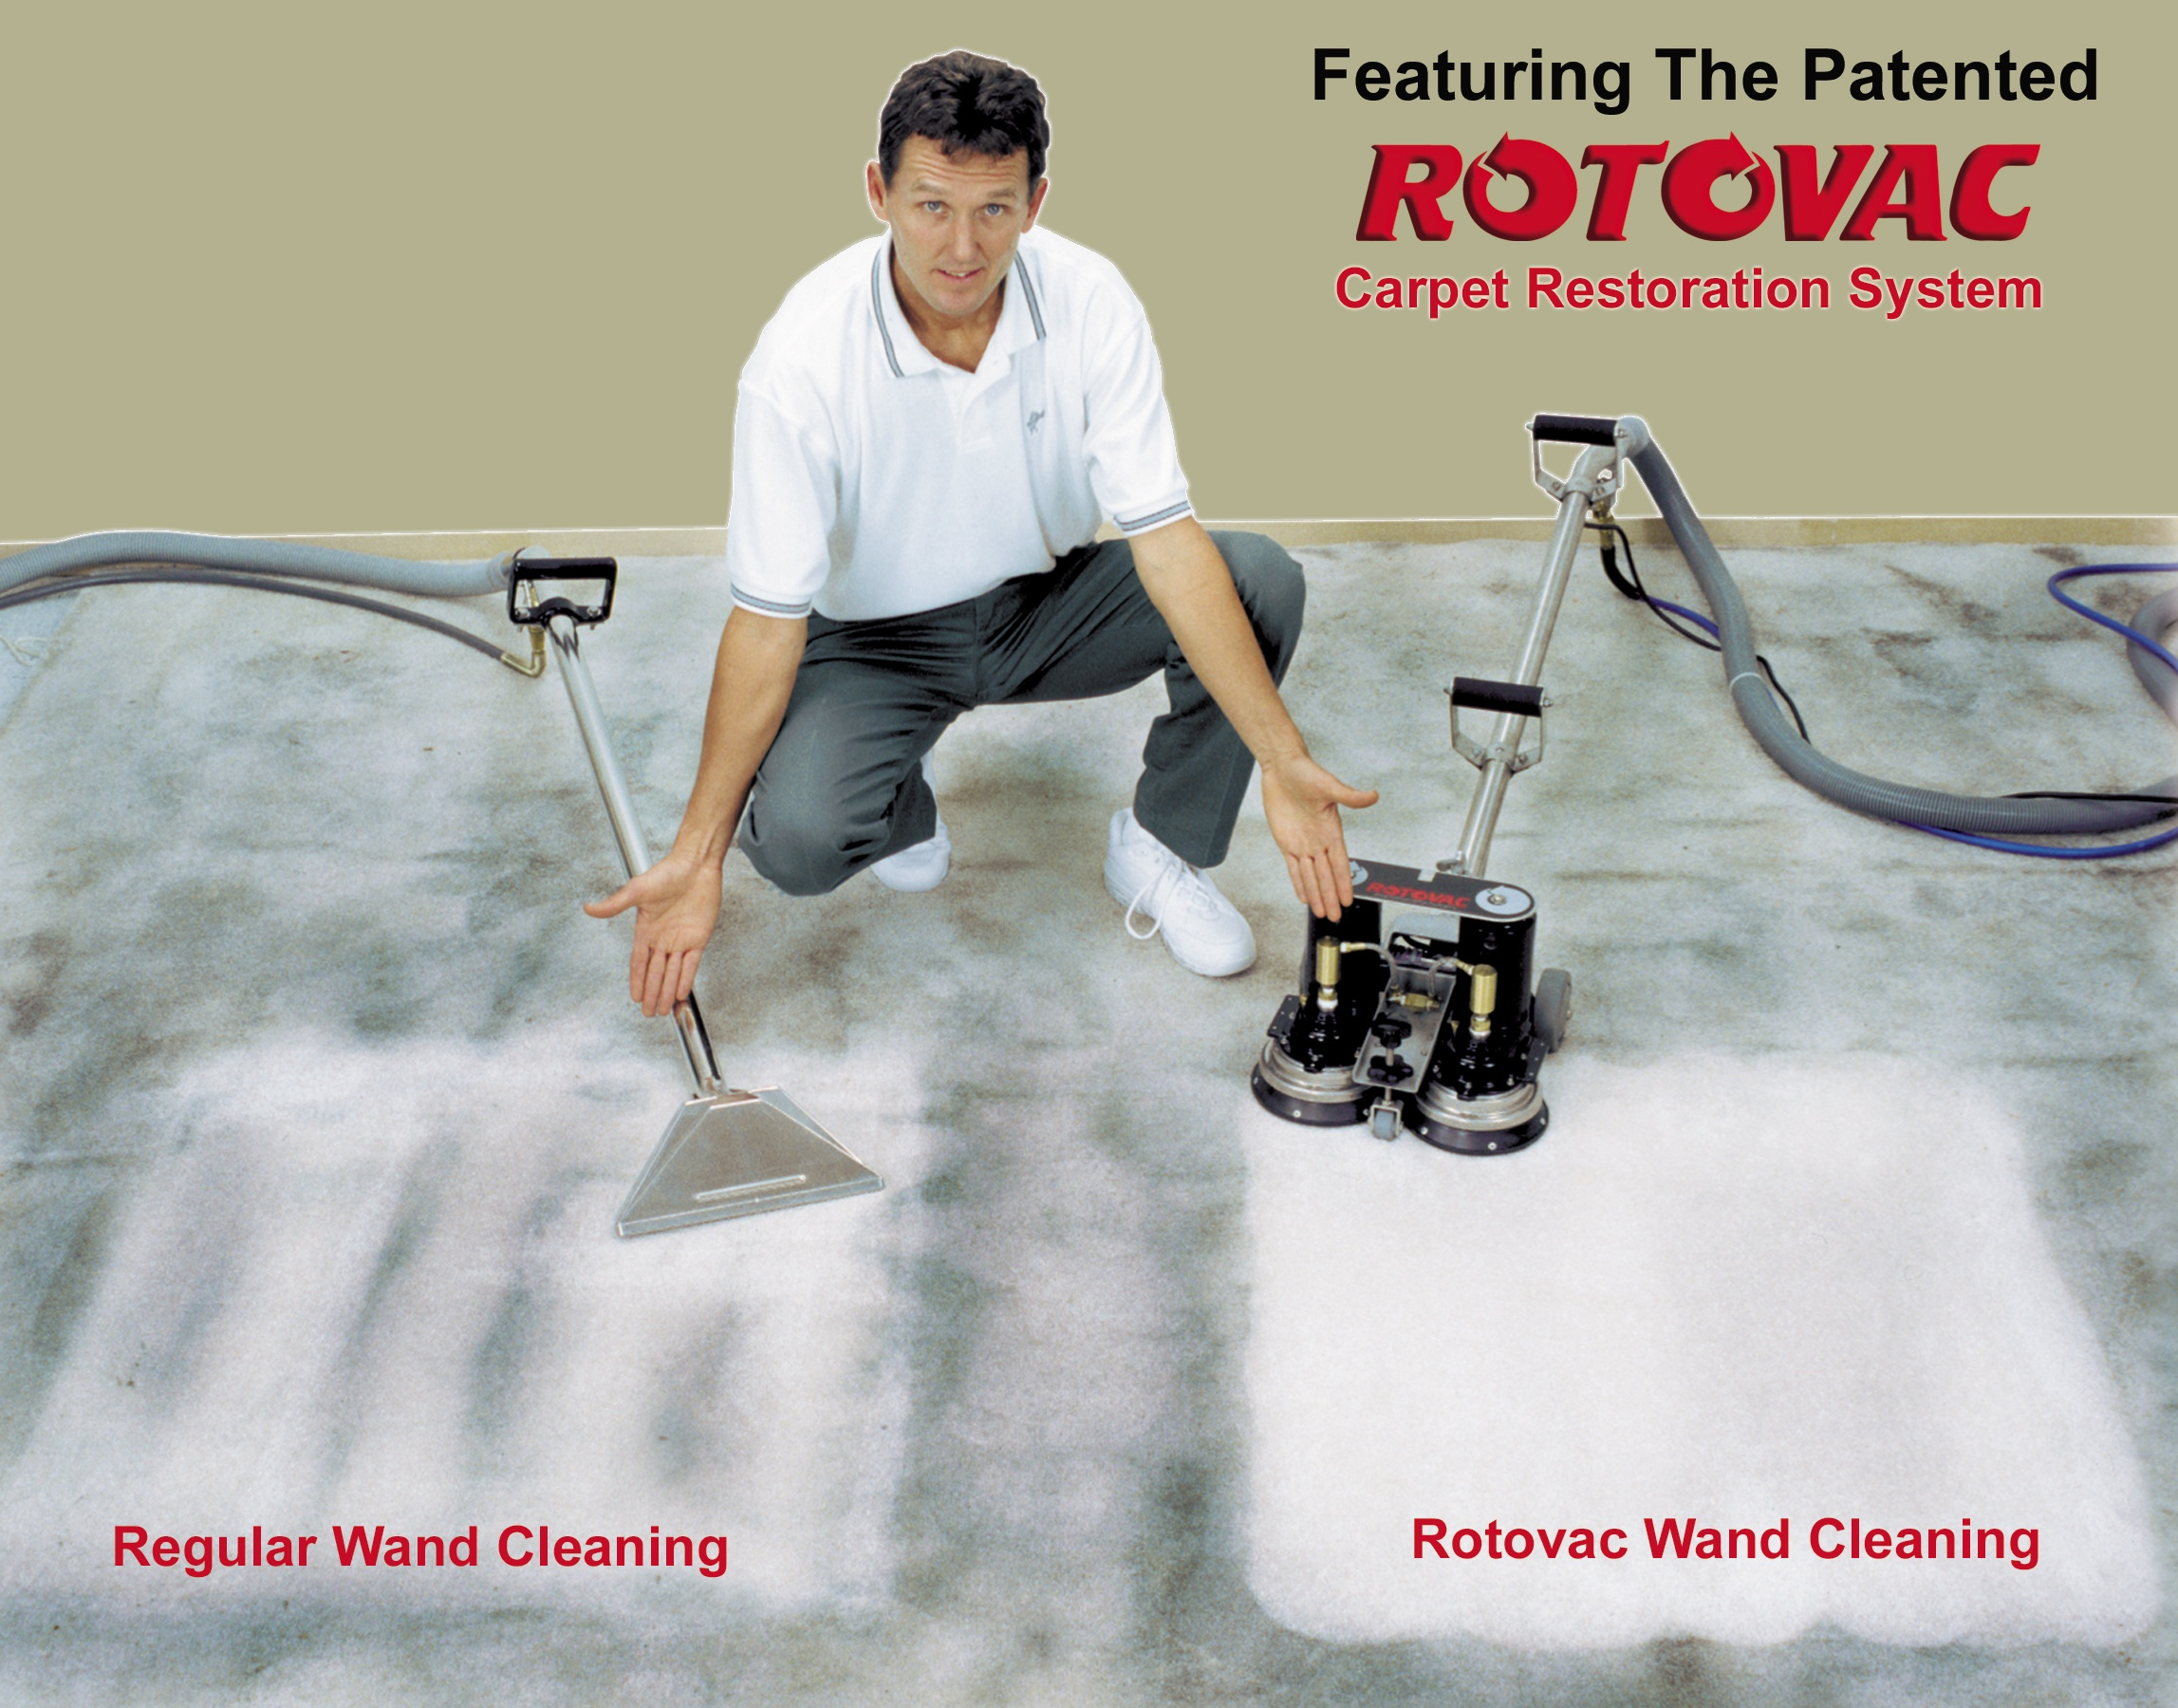 Rotovac Carpet Restoration System